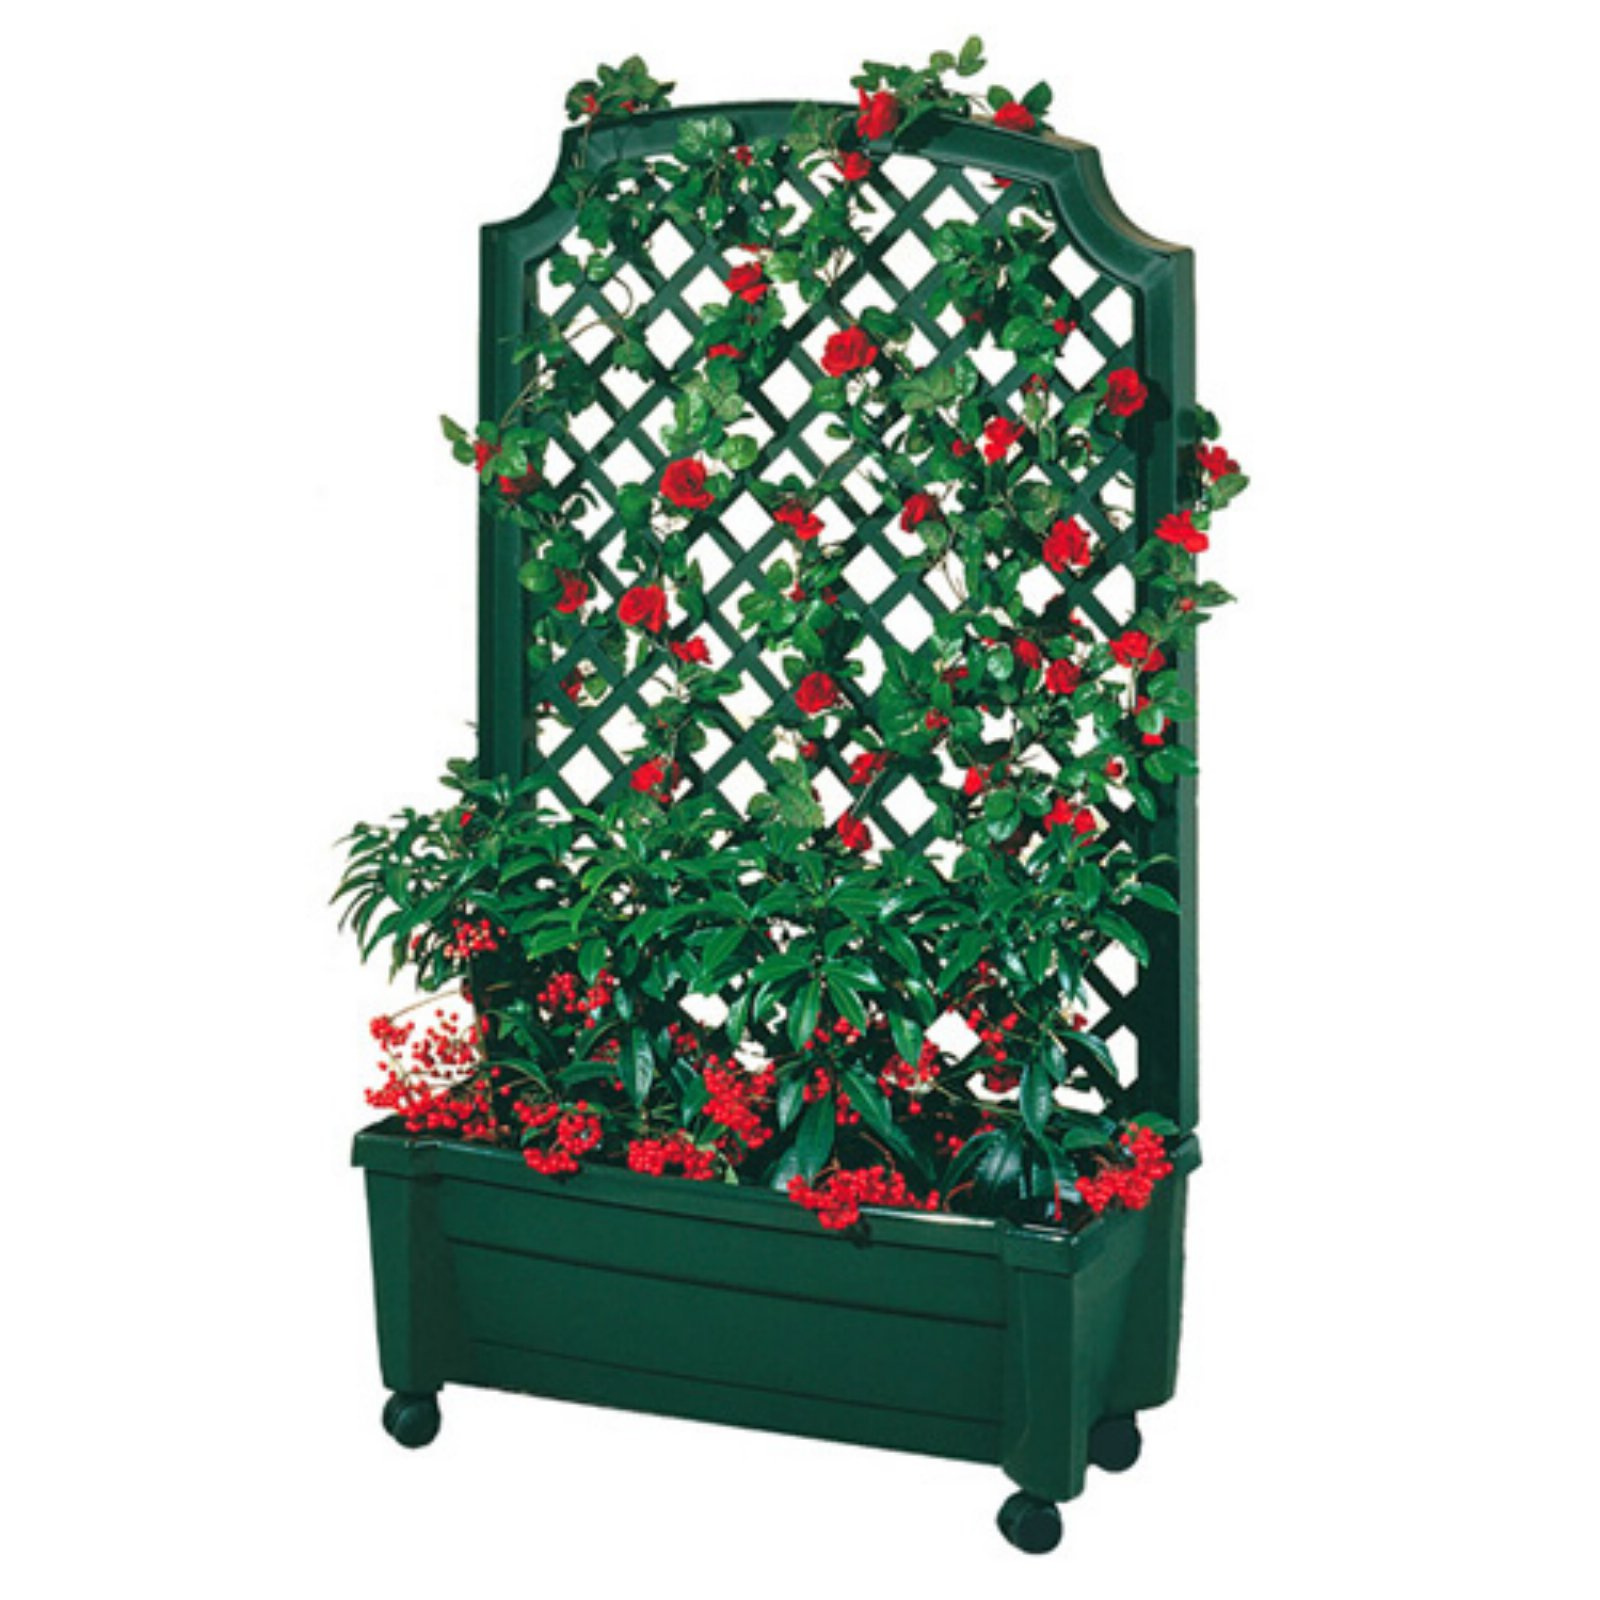 Exaco Calypso Planter with Trellis